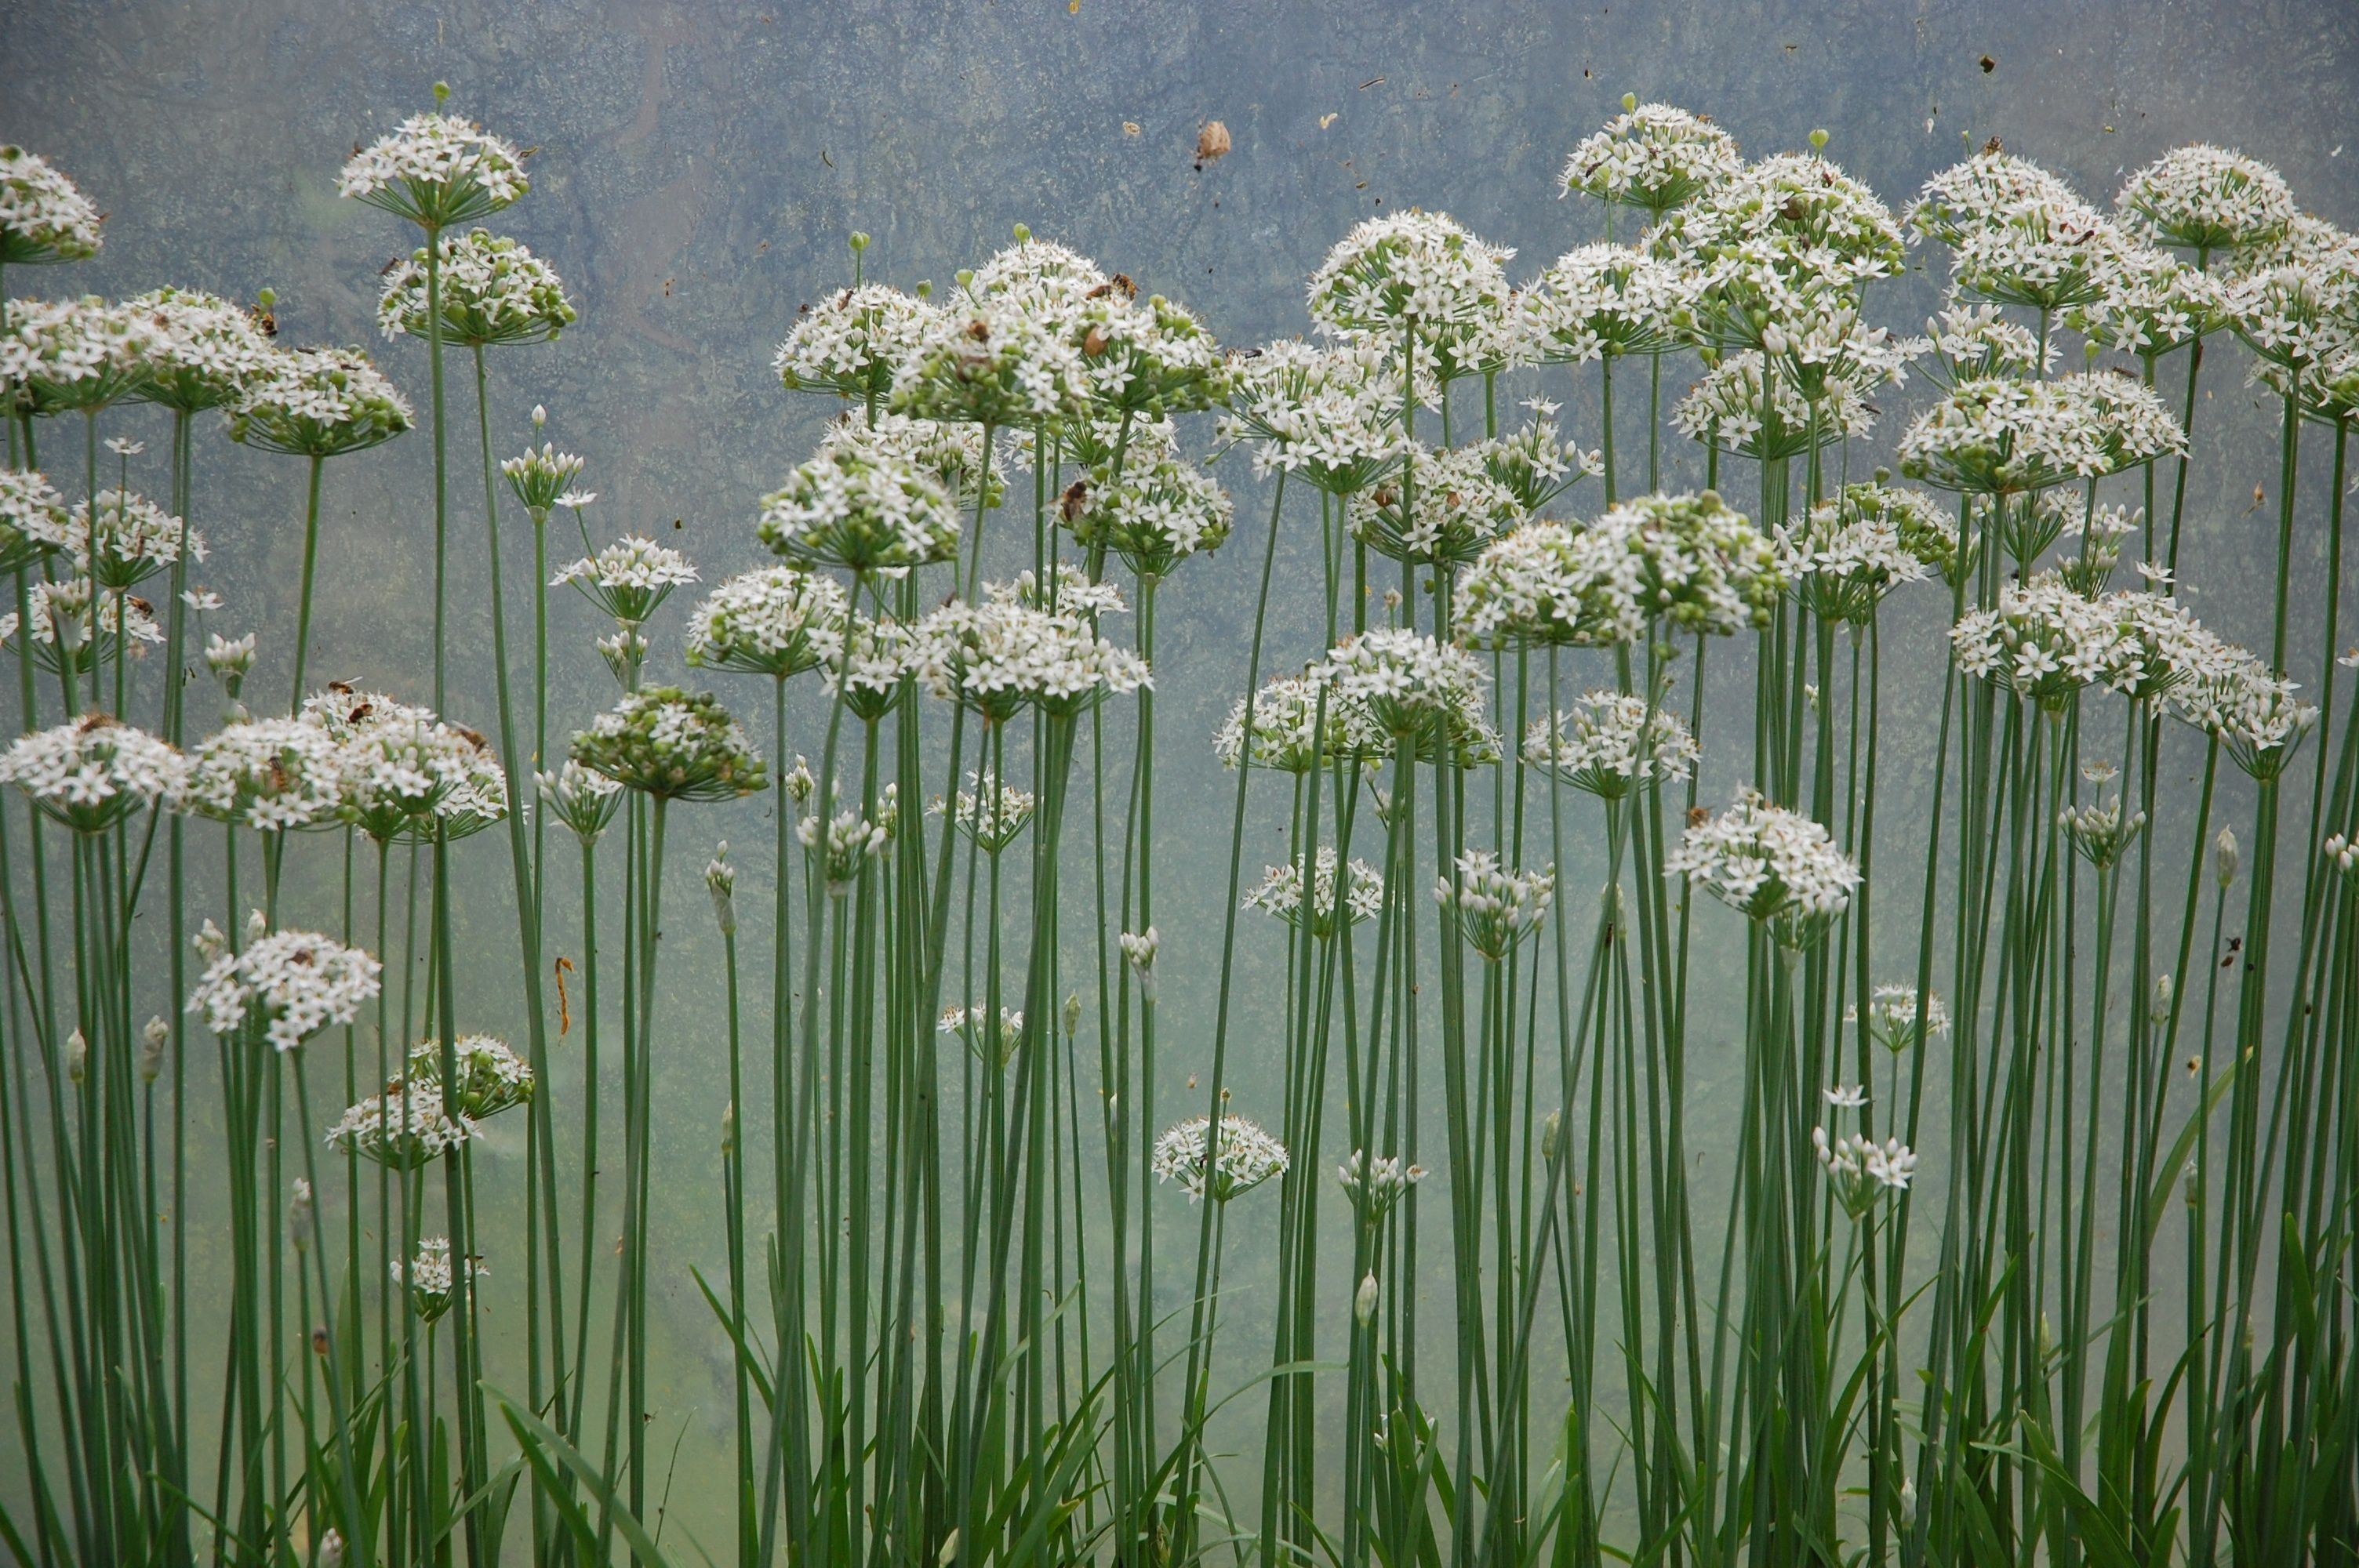 We Cultivate Our Chives In Amongst Our Herb Bed But Did You Know That Wild Chives Are One Of The Most Common And Easy To I Chives Plant Herb Seeds Wild